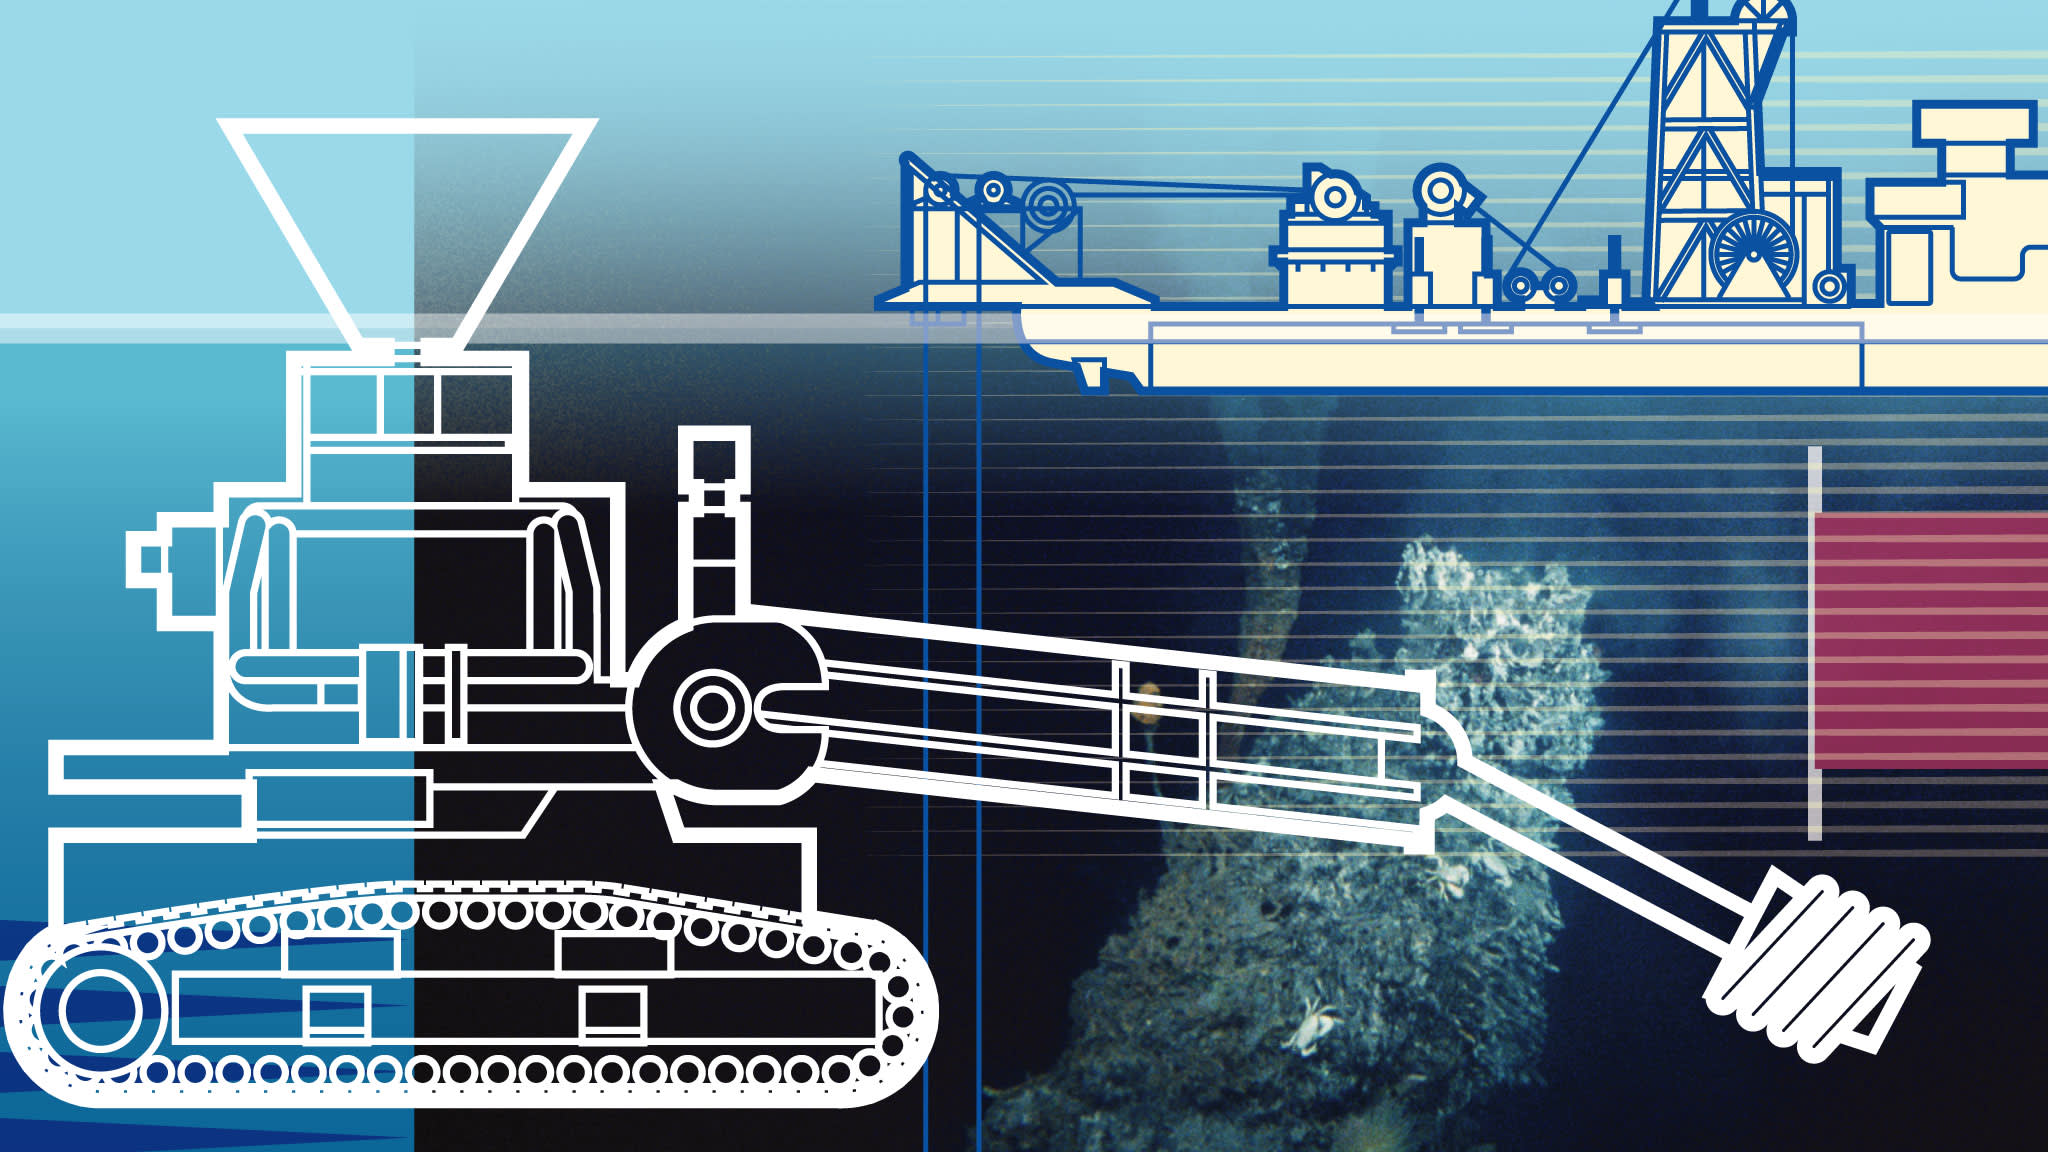 Electric vehicles spur race to mine deep sea riches | Financial Times